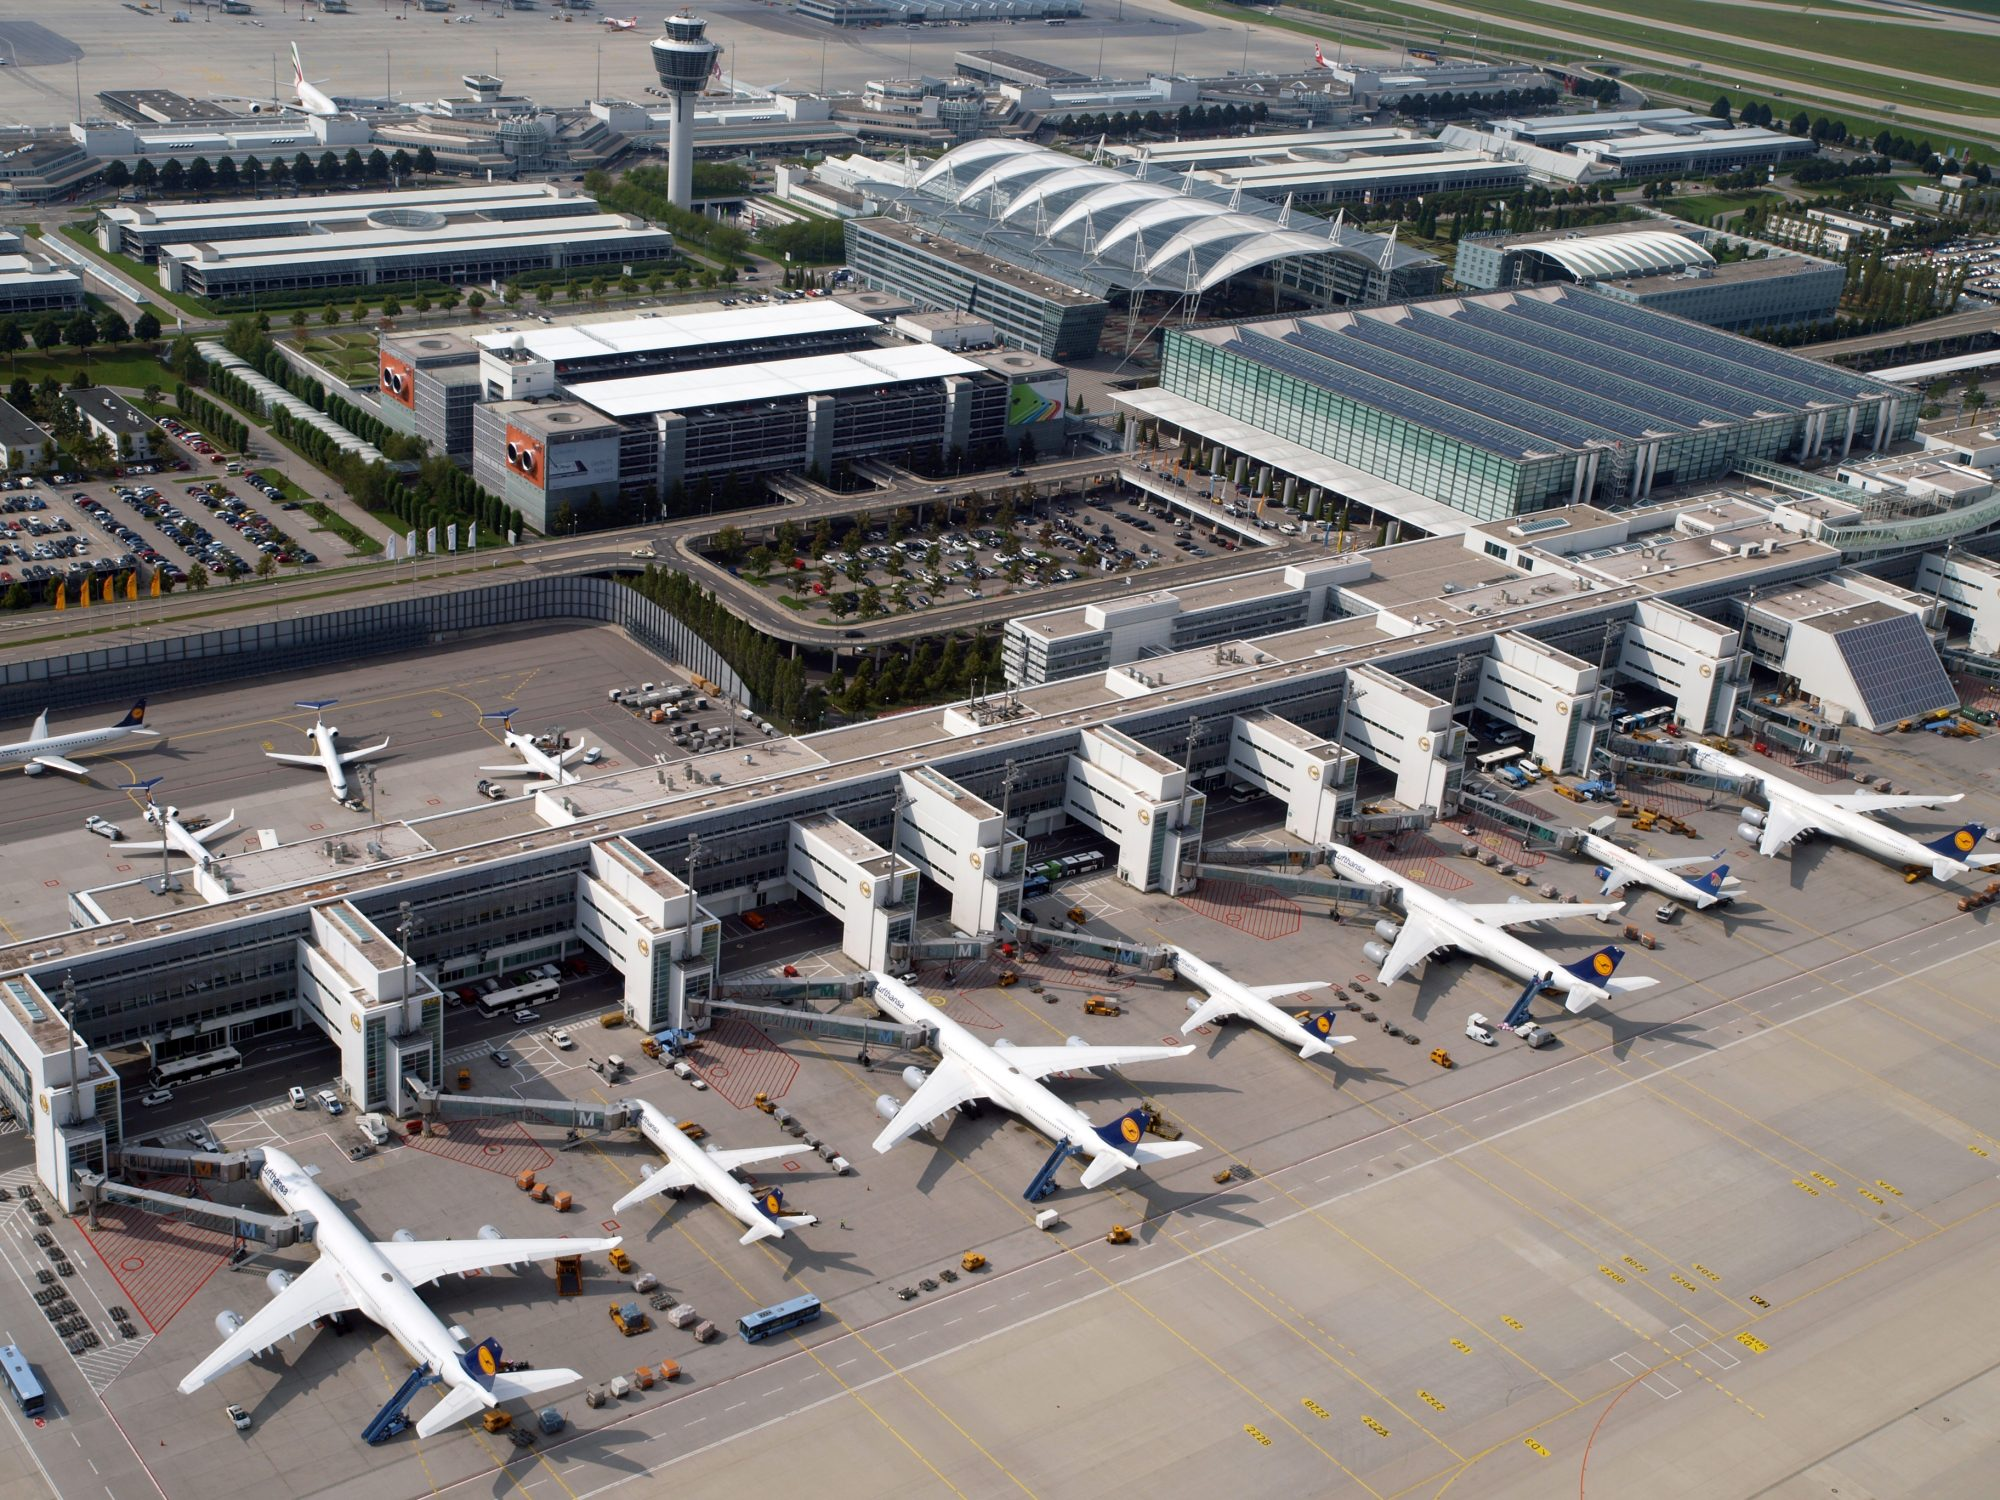 Munich Airport, Germany